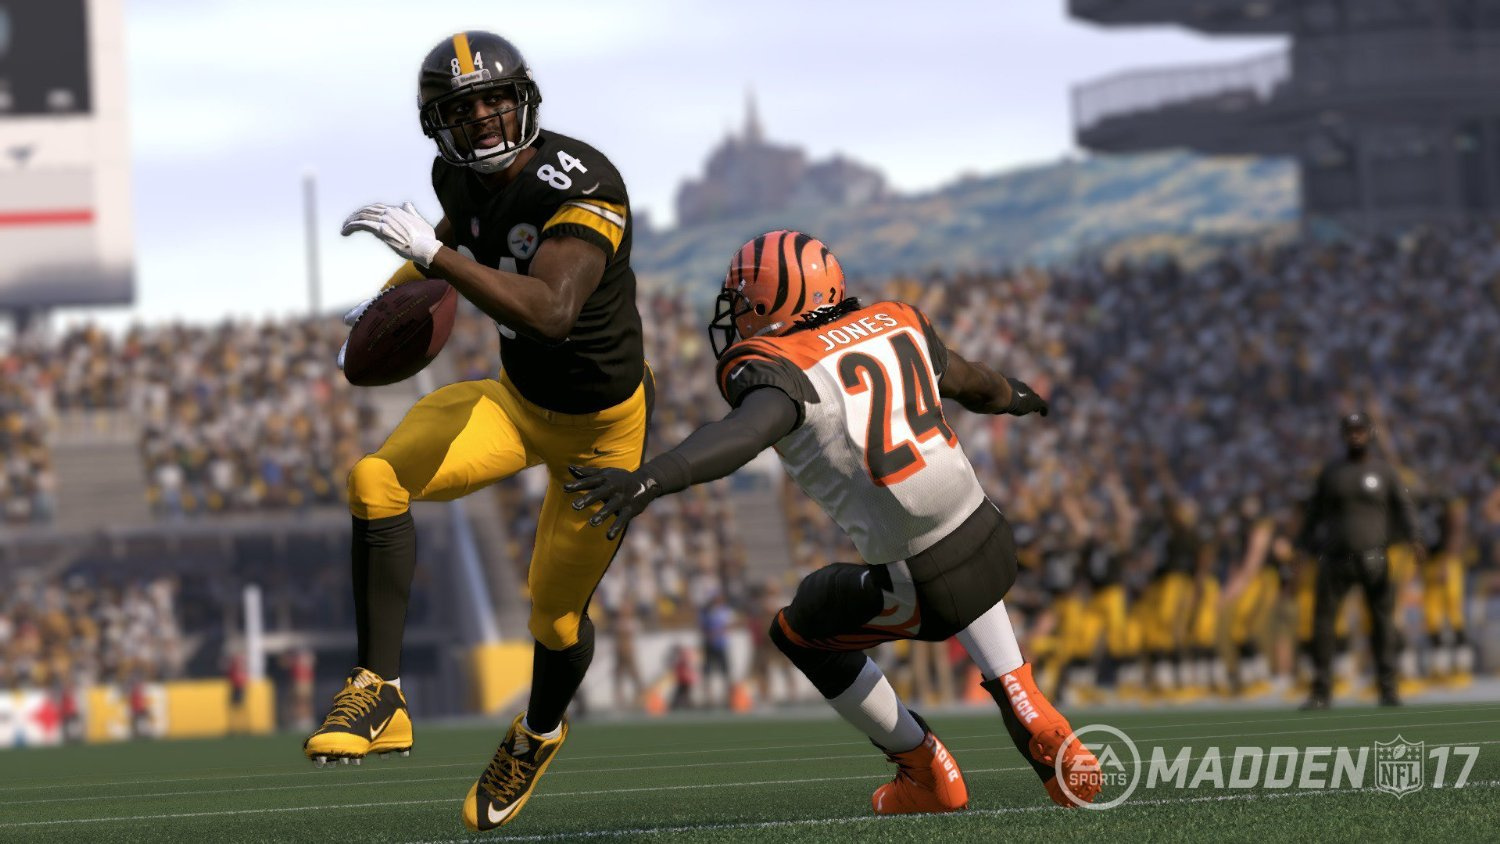 Madden NFL 17 Glitch Lets Players Score Touchdowns in a Hilarious Way